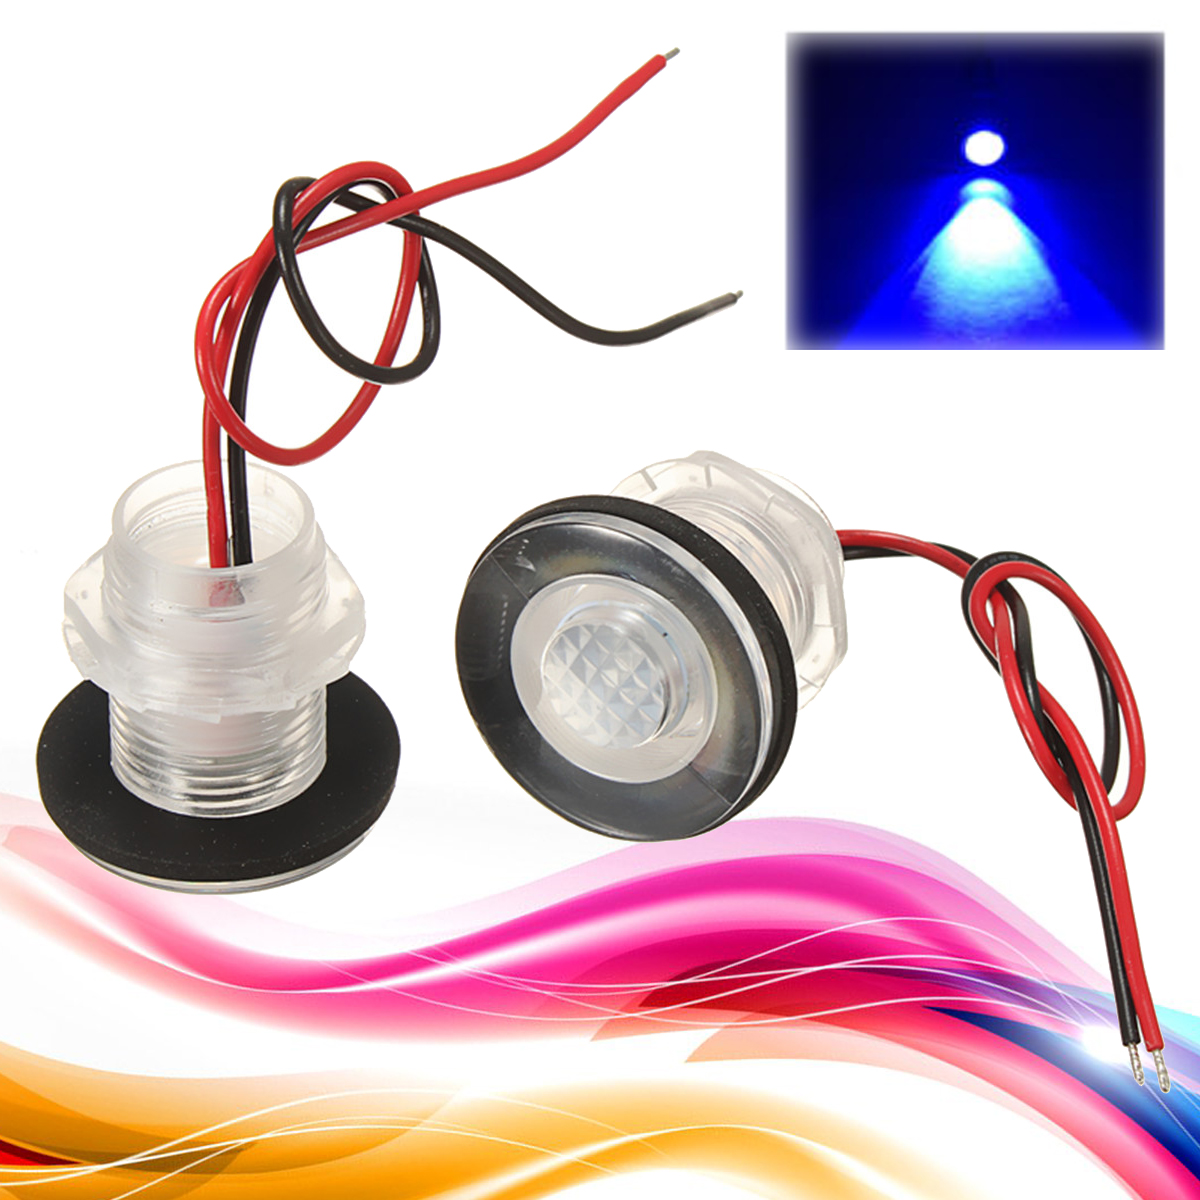 2Pcs 0.2W 12V RV Waterproof LED Courtesy Light Lamp Blue 33mm for Boats Stair Truck Car